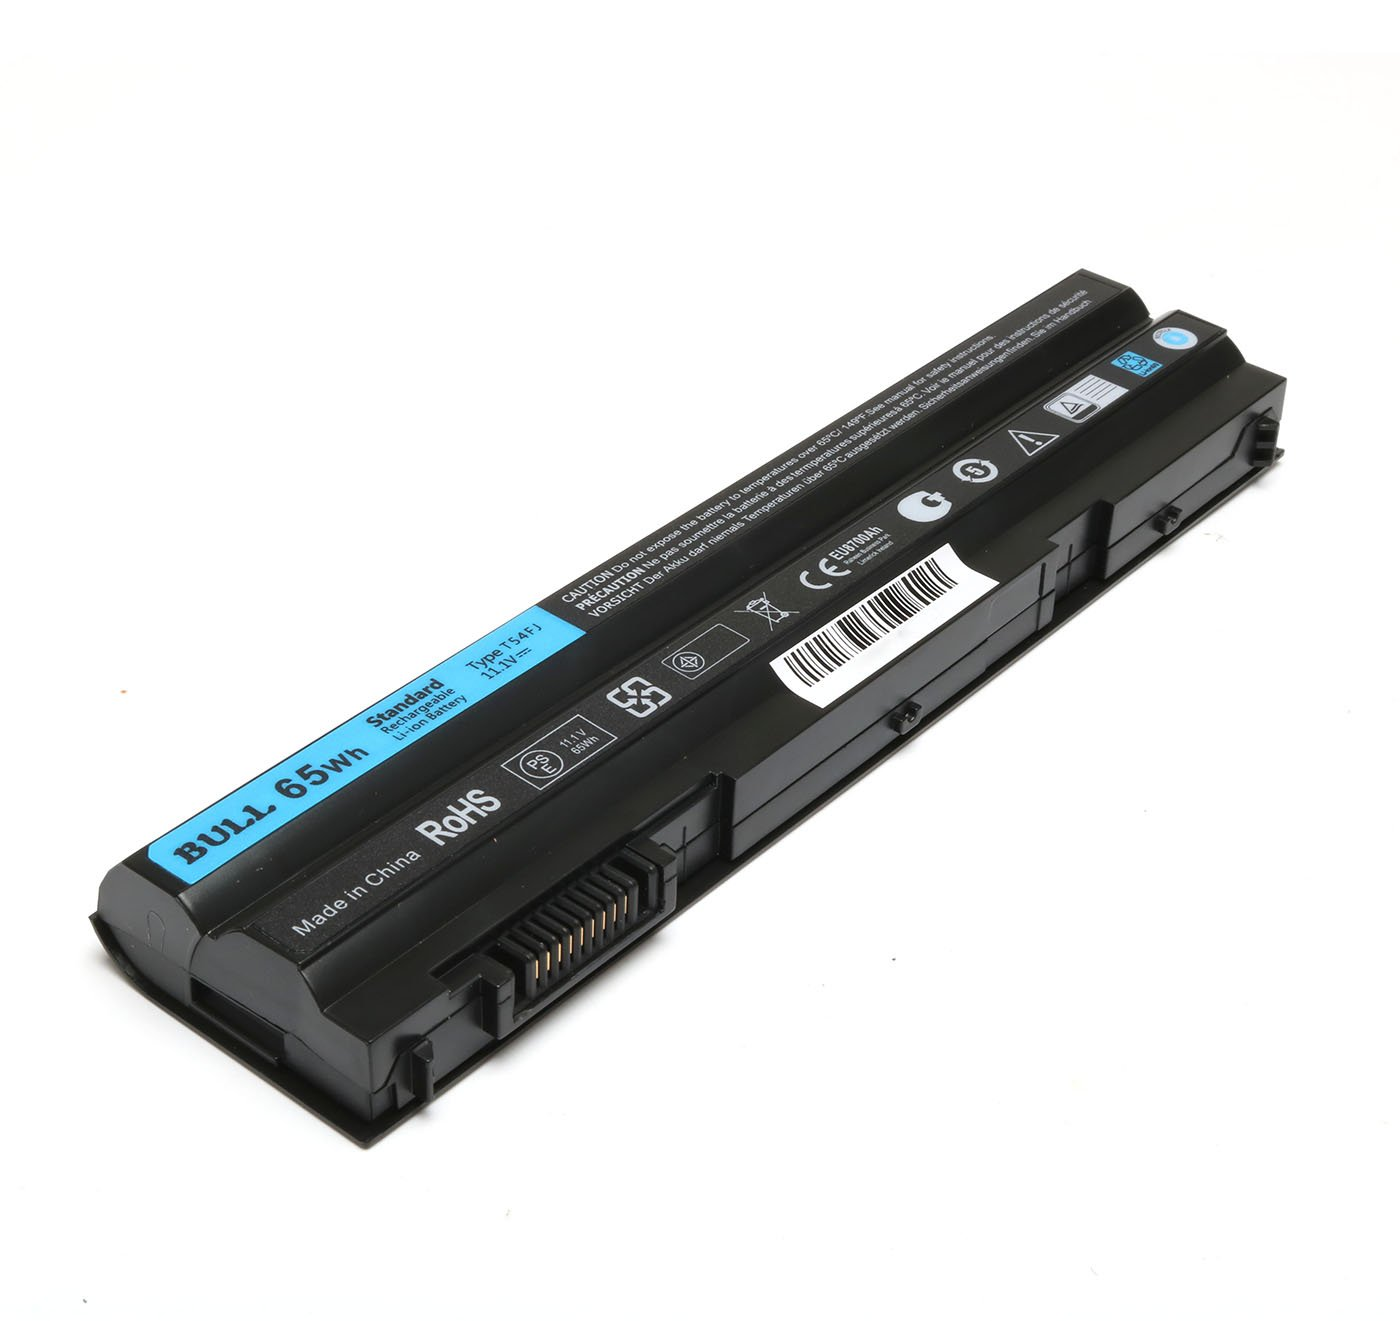 BULL-TECH 11.1V T54FJ New Laptop Battery for Dell Latitude E5420 E5520 E6420 E6520 Compatible P/N: M5Y0X 312-1163 HCJWT 7FJ92 by BULL-TECH (Image #5)